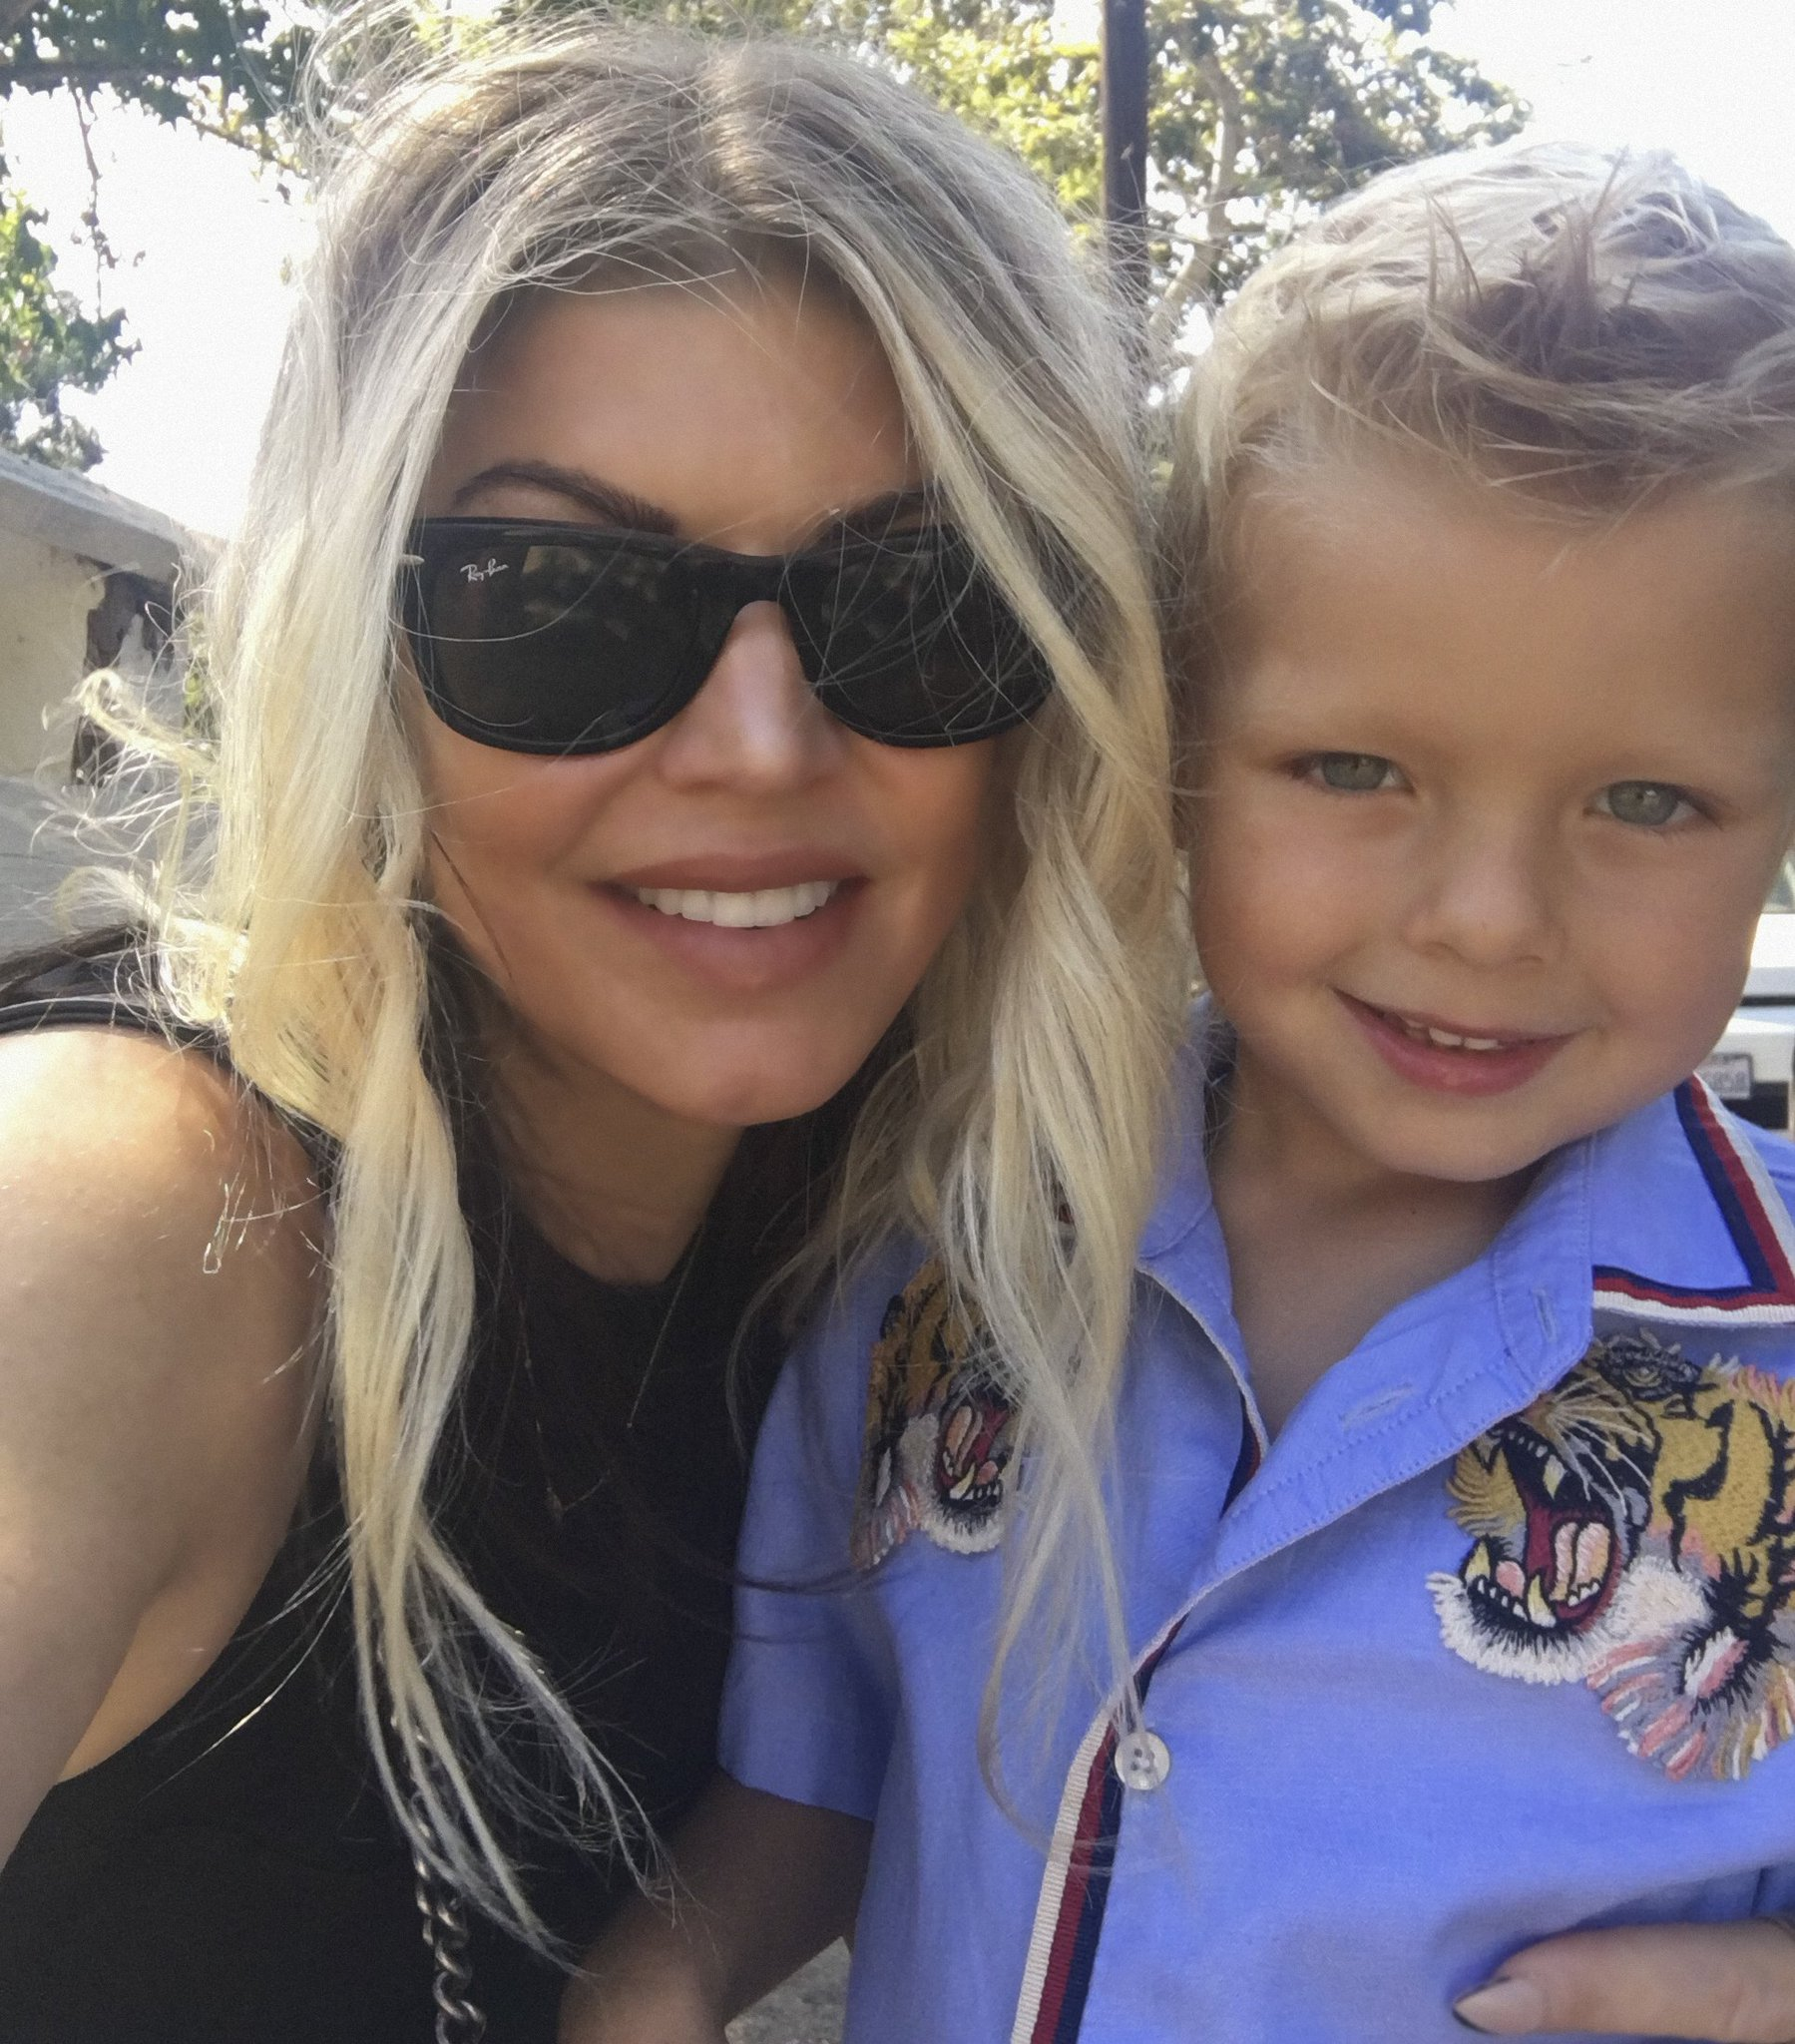 happy 4th bday axl jack!!! i love you -mommy �������� ❤️�������� #axljack https://t.co/cp6nyJof4f